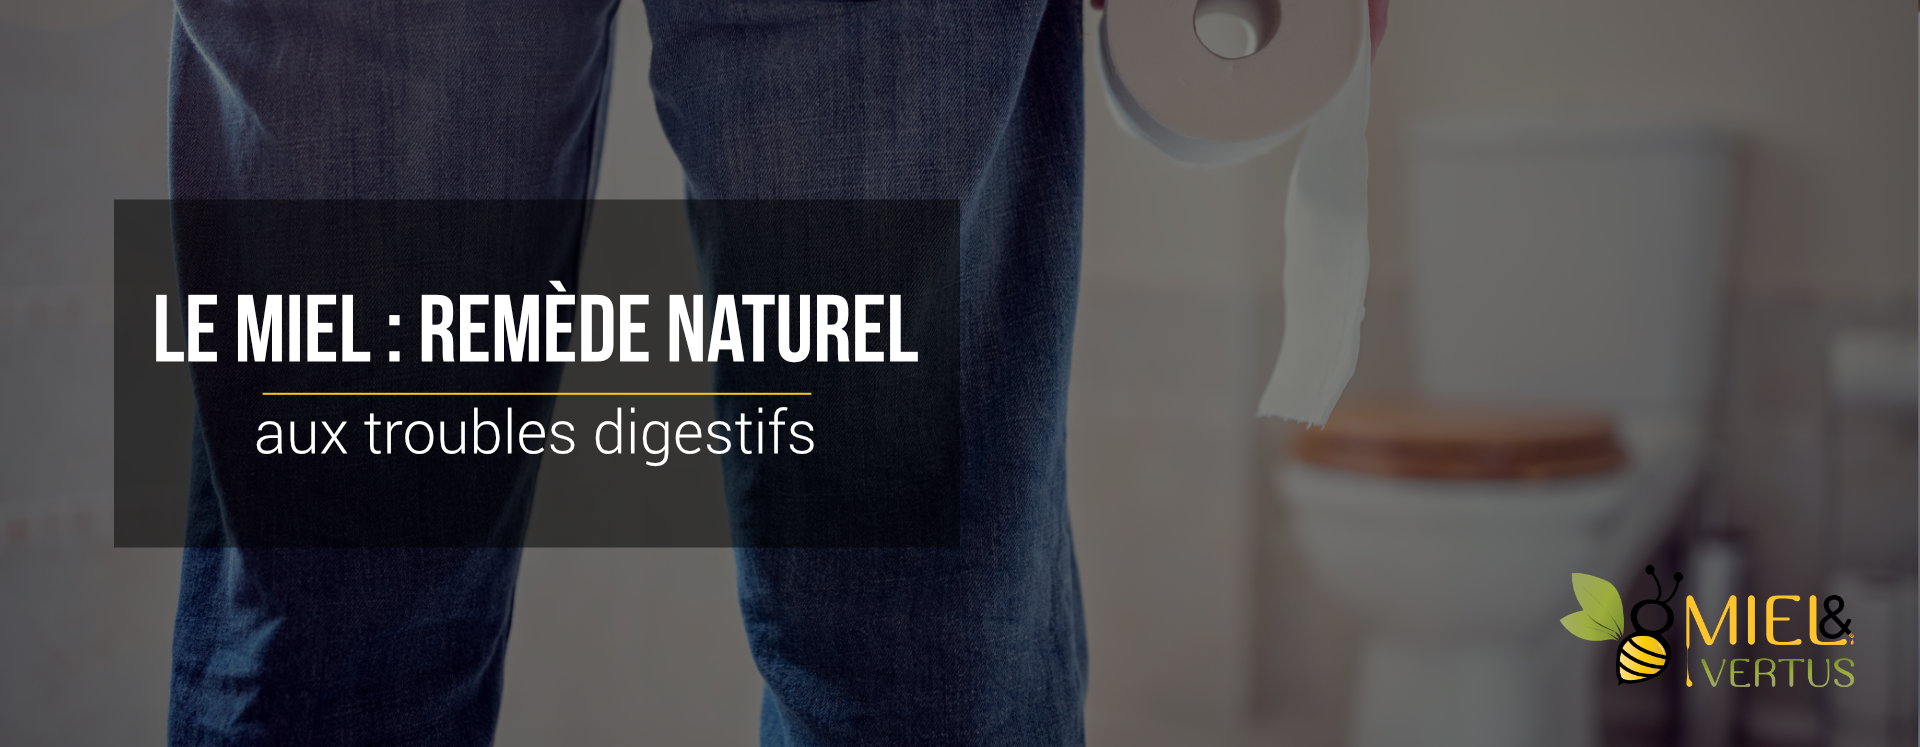 miel-remede-naturel-troubles-digestifs